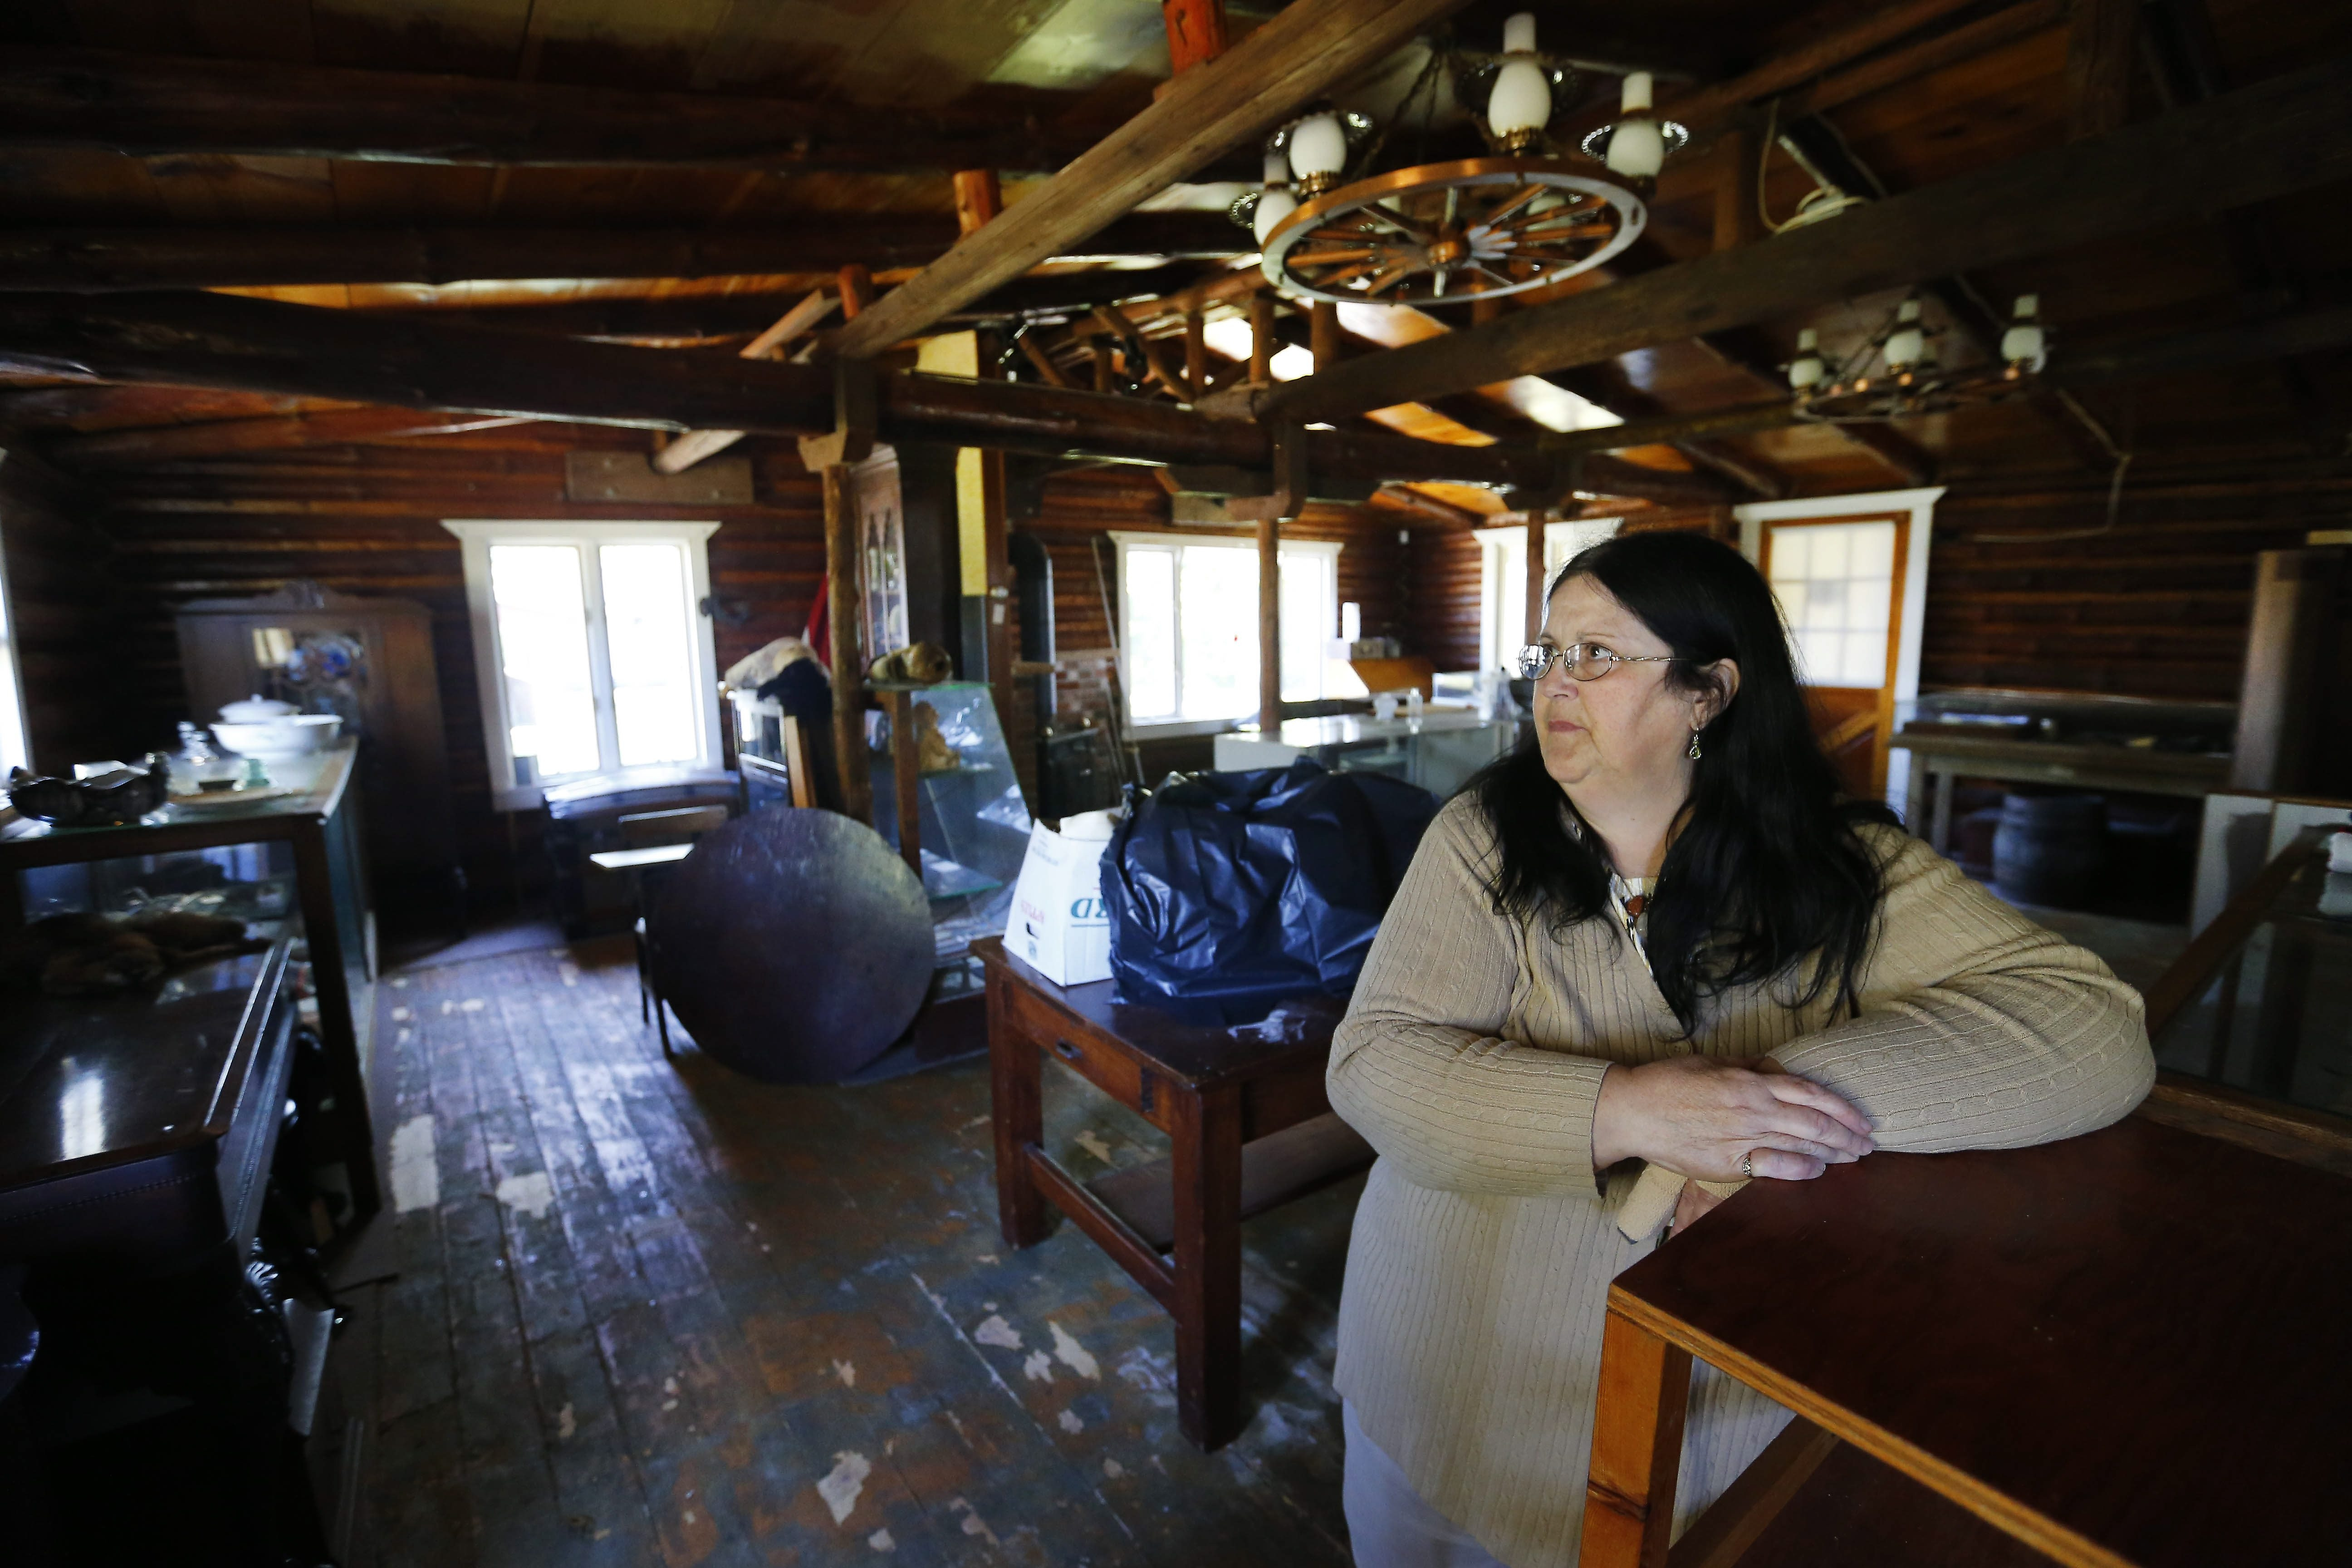 Rose Schaeffer, president of the Newfane Historical Society, looks at some of the water damage that occurred in the group's log cabin over the winter.